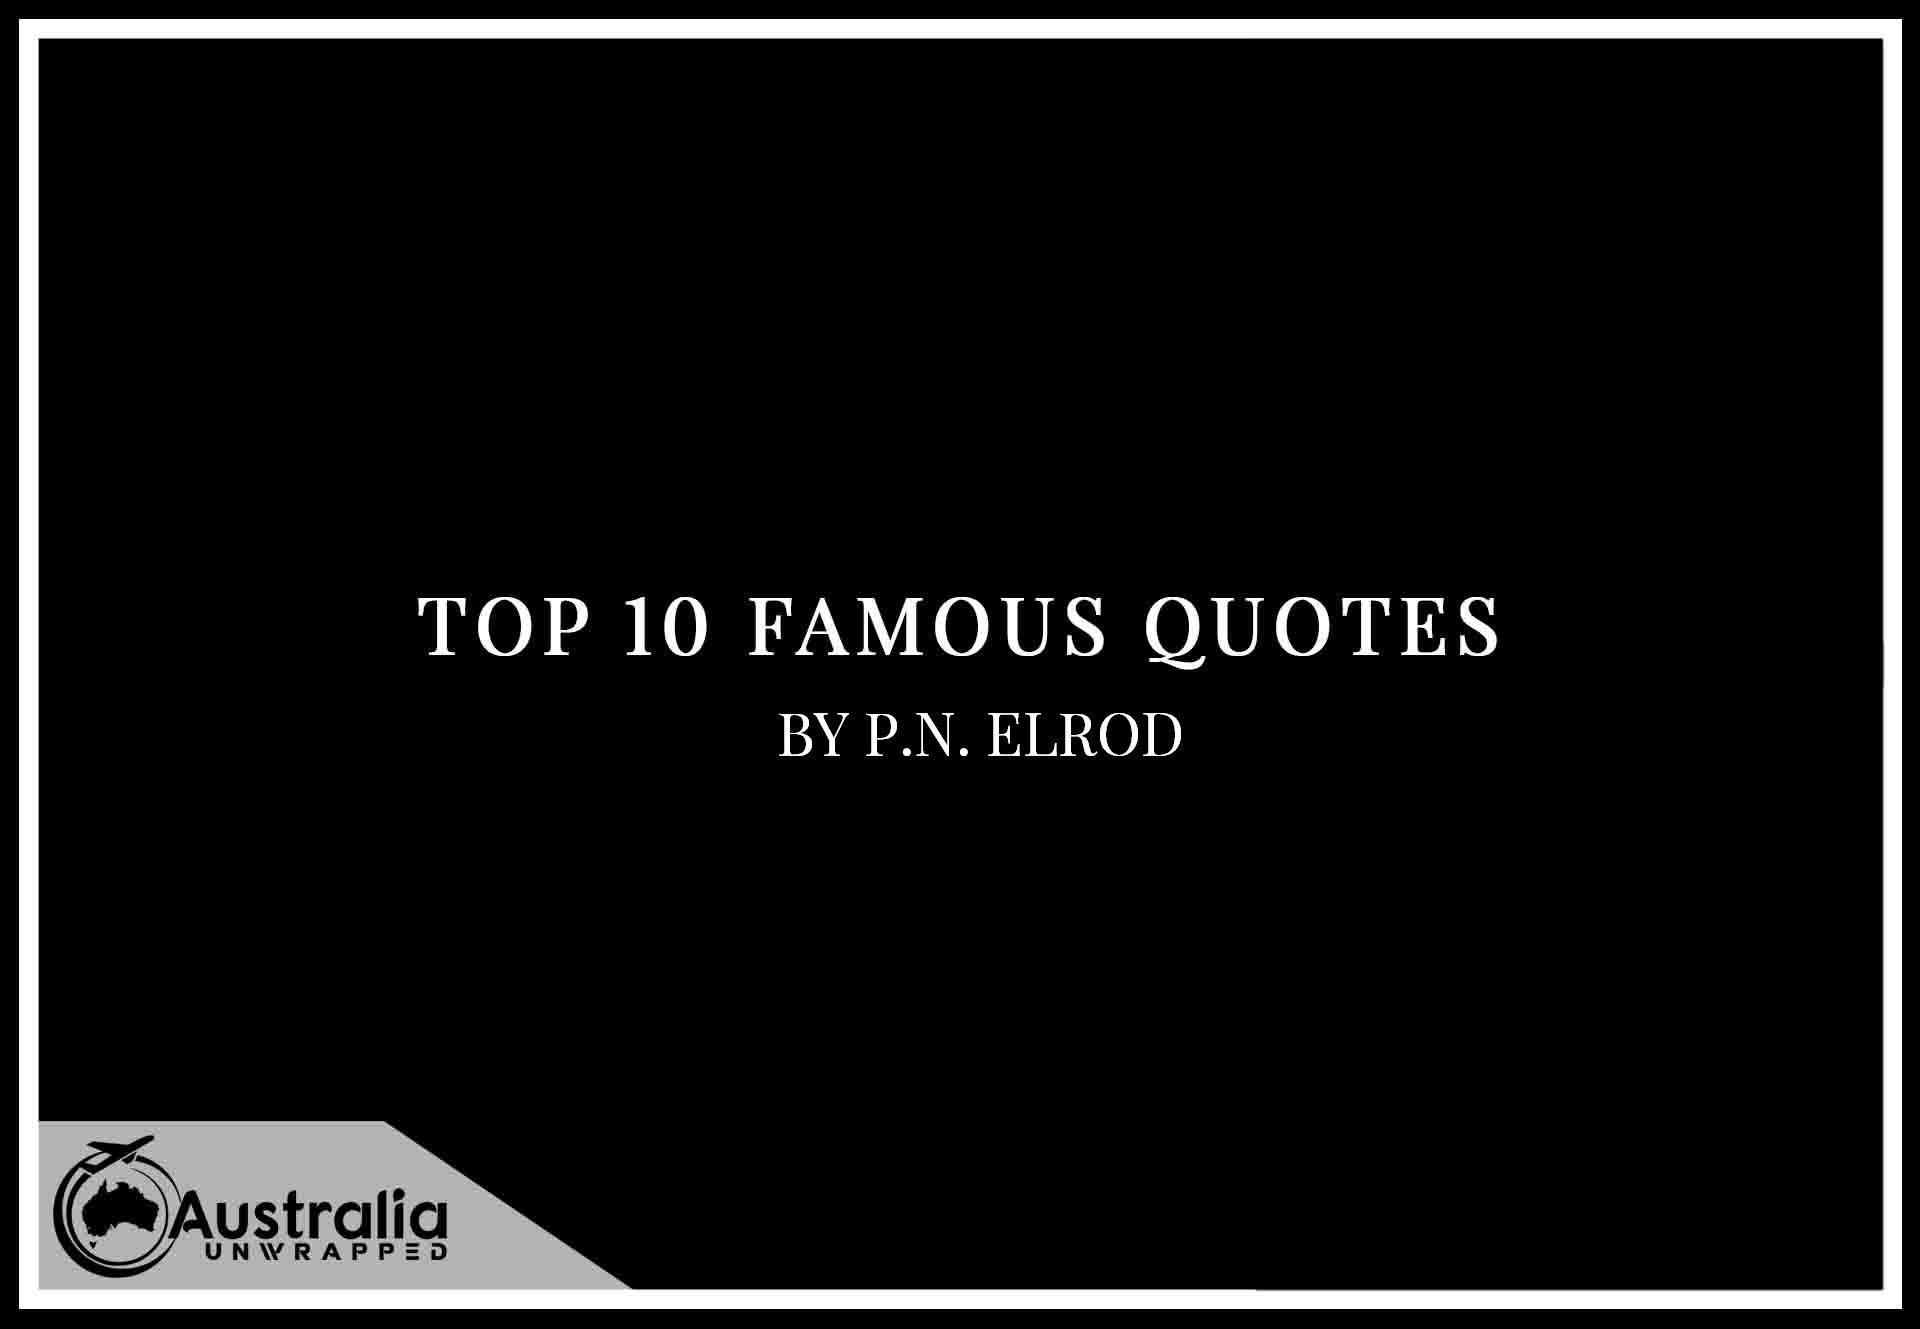 Top 10 Famous Quotes by Author P.N. Elrod